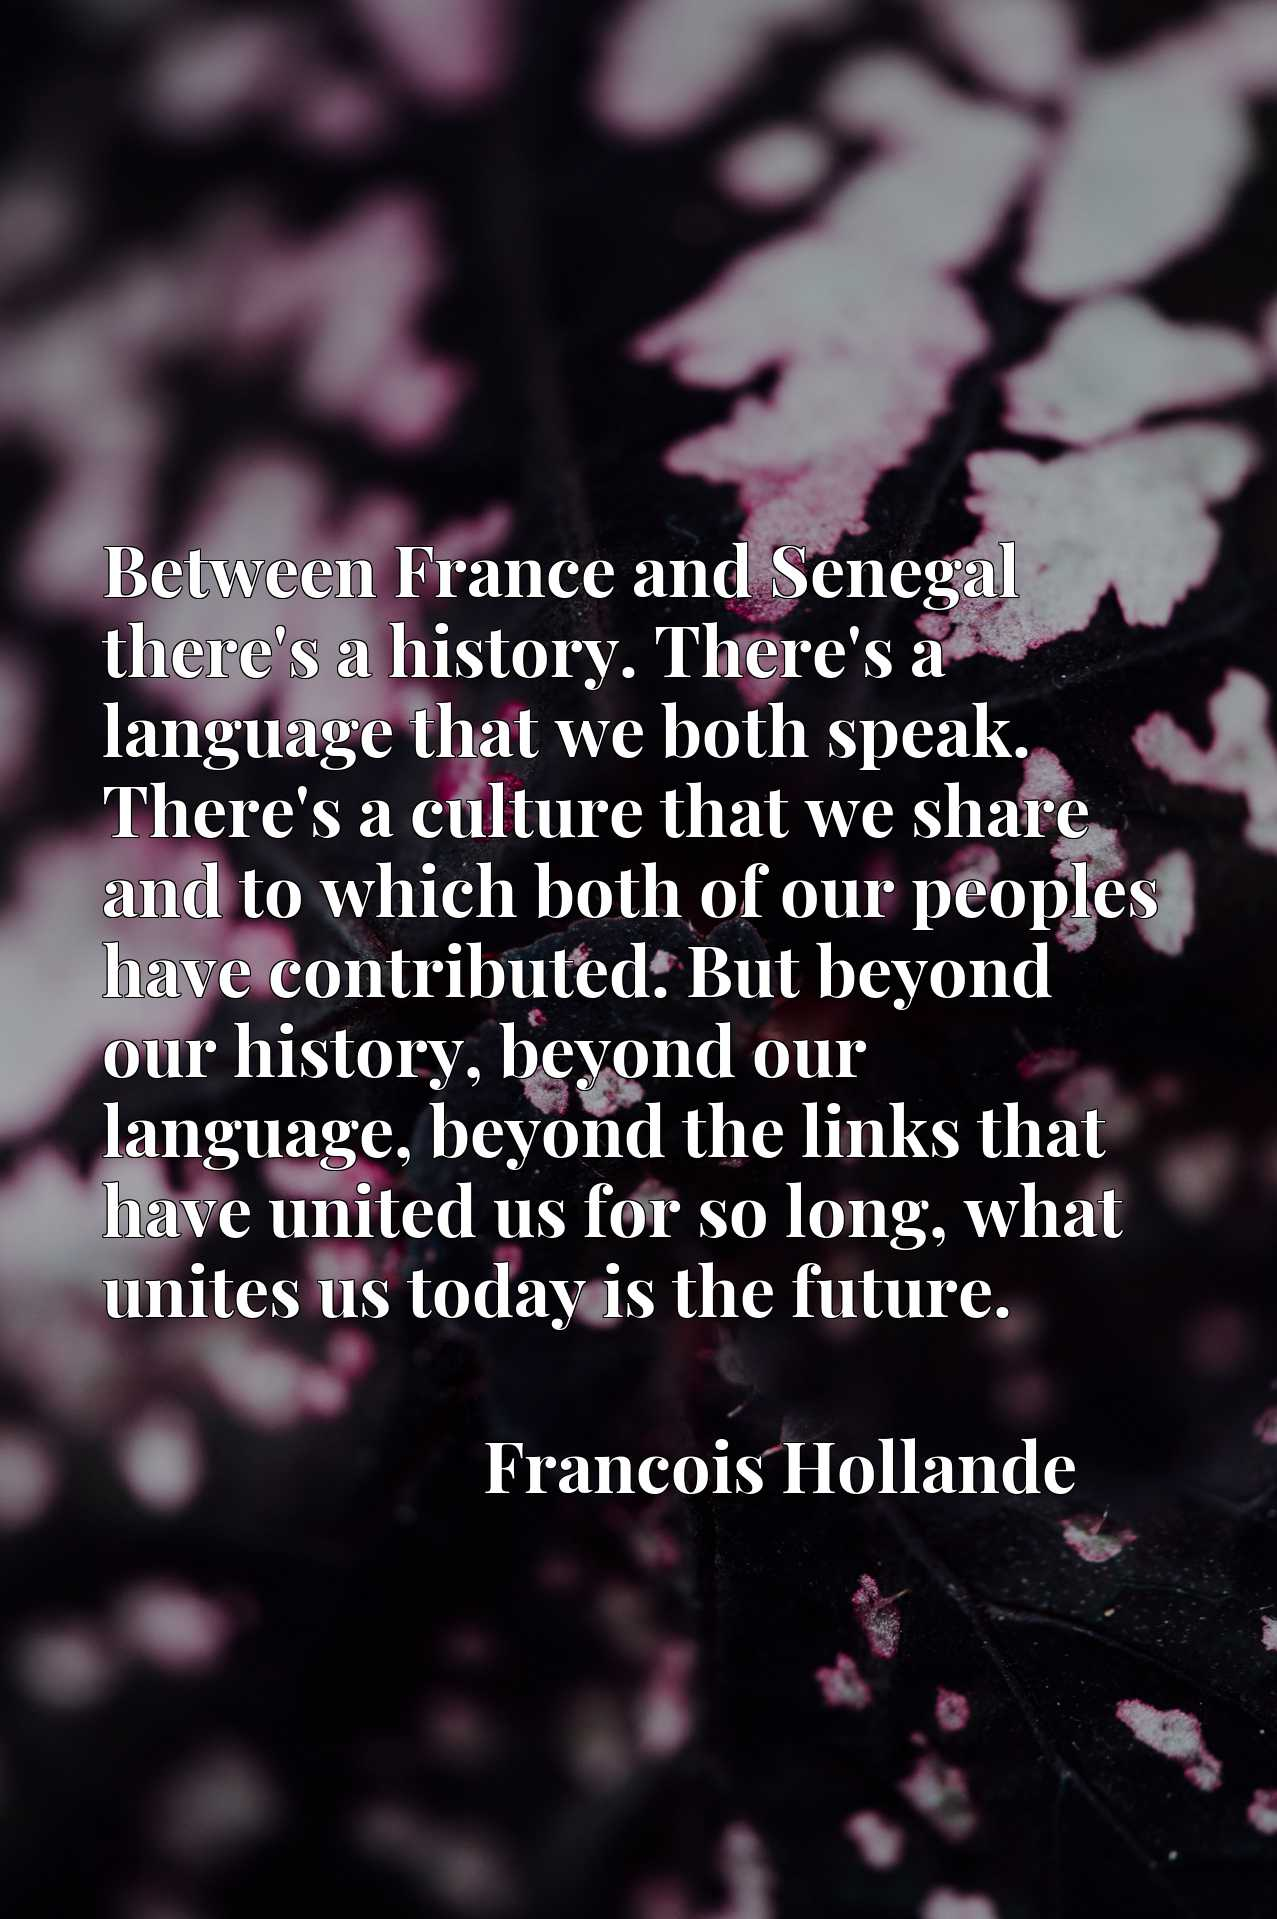 Between France and Senegal there's a history. There's a language that we both speak. There's a culture that we share and to which both of our peoples have contributed. But beyond our history, beyond our language, beyond the links that have united us for so long, what unites us today is the future.